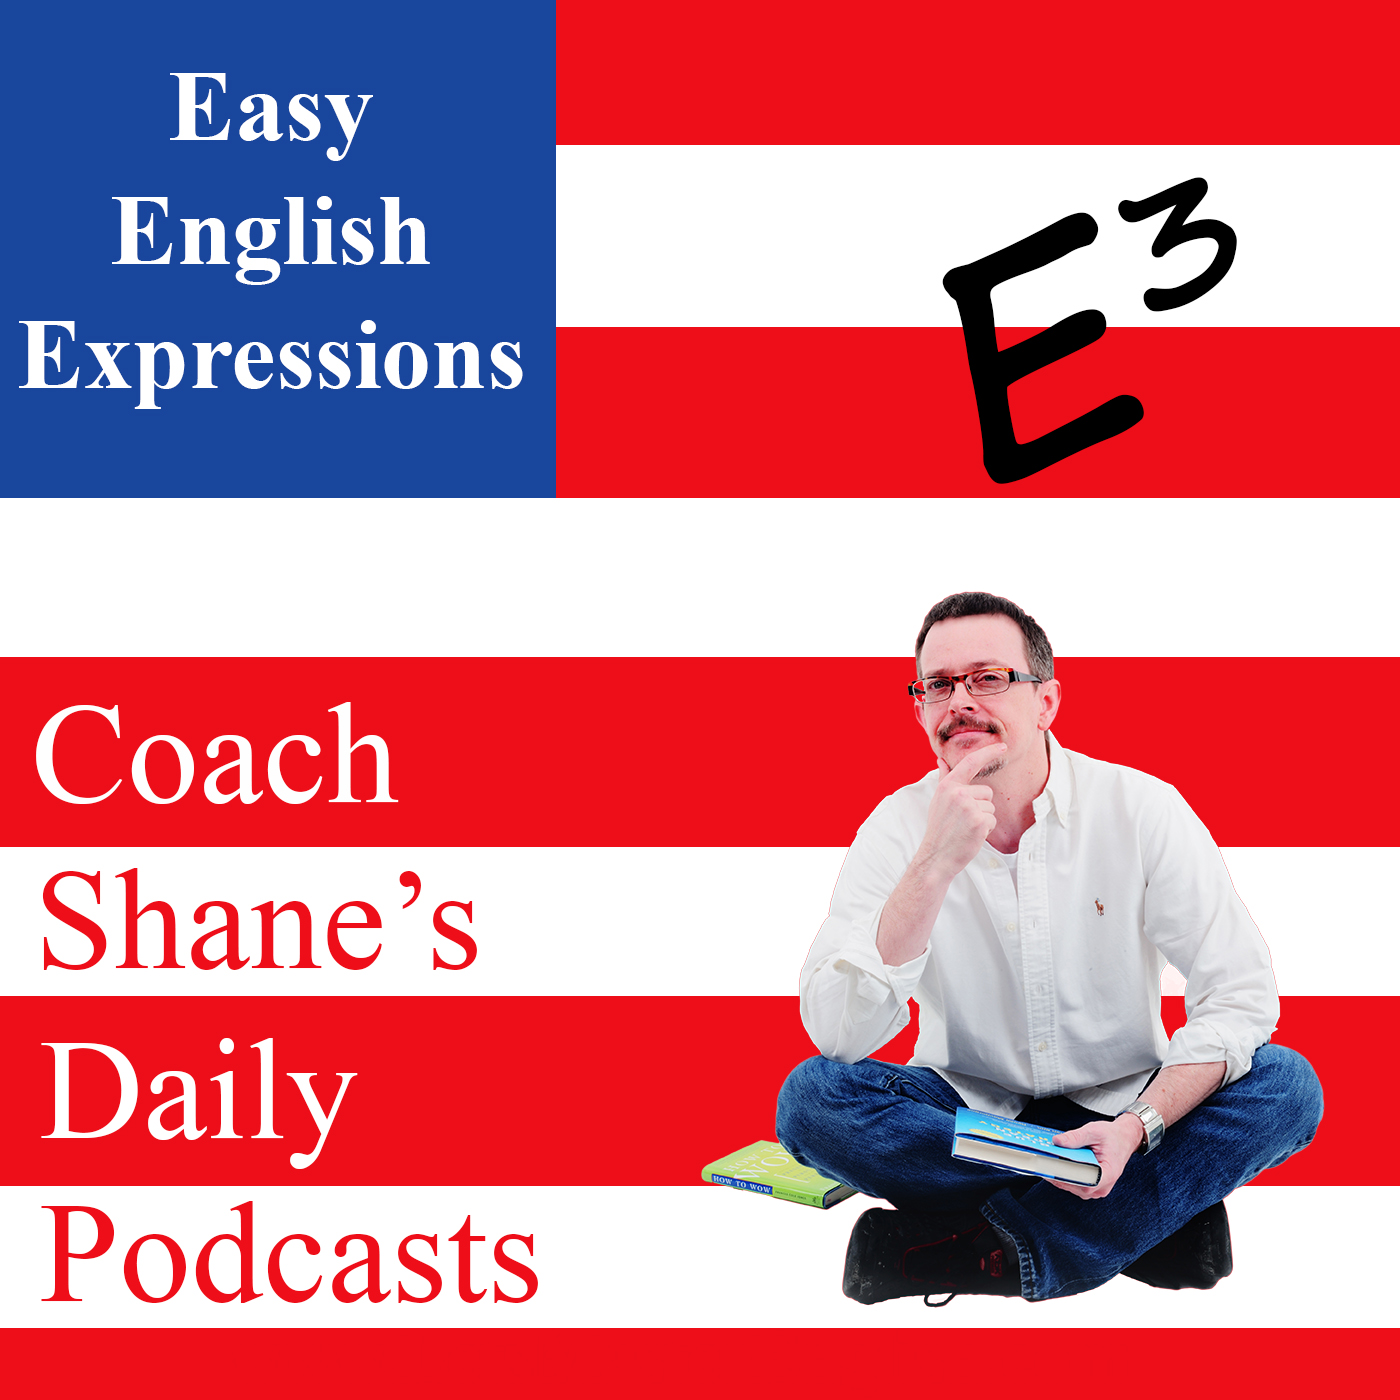 36 Daily Easy English Expression PODCAST—I beg to differ.